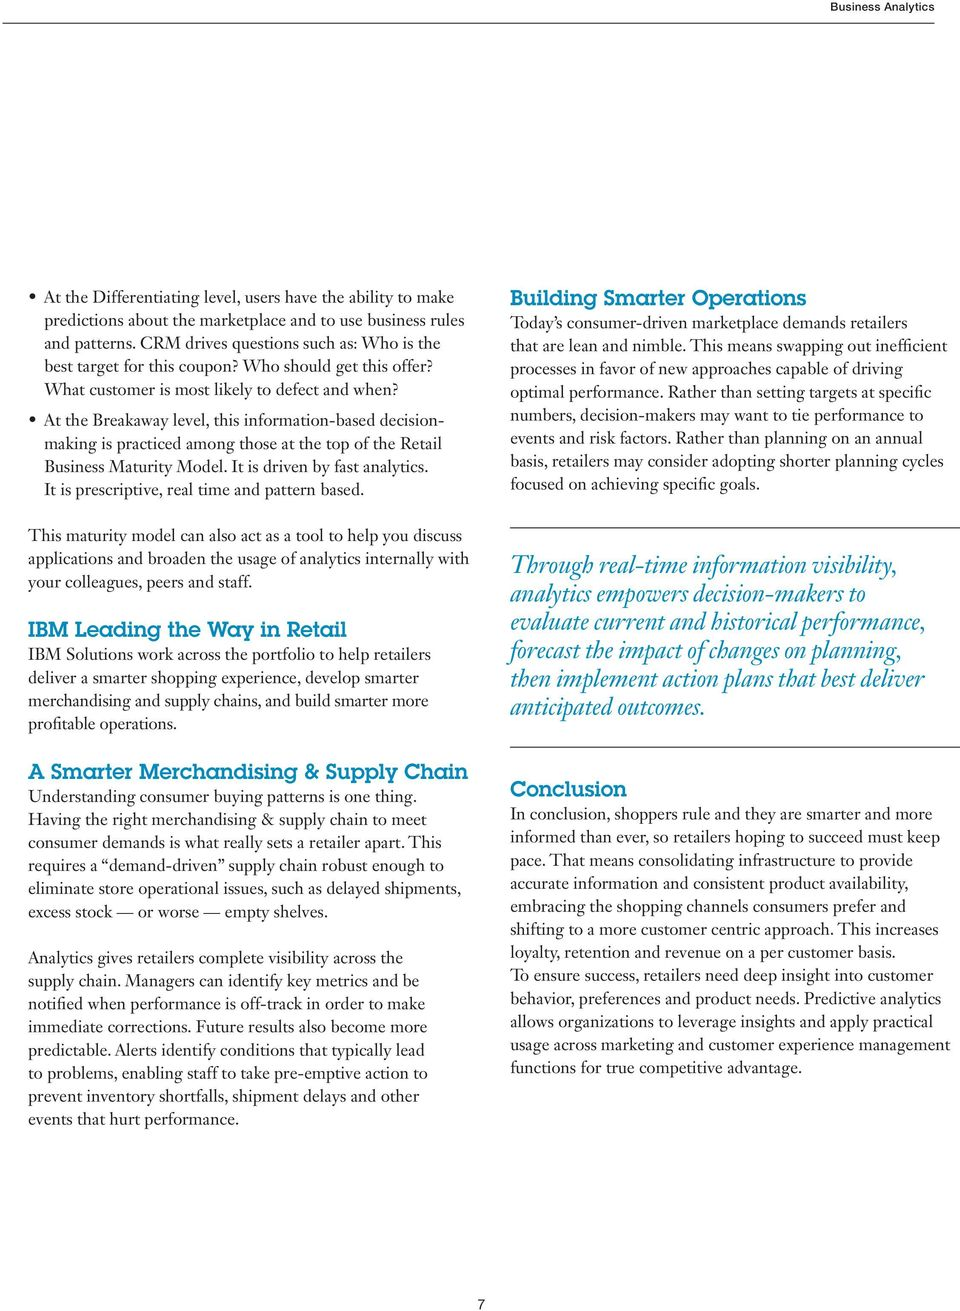 At the Breakaway level, this information-based decisionmaking is practiced among those at the top of the Retail Business Maturity Model. It is driven by fast analytics.